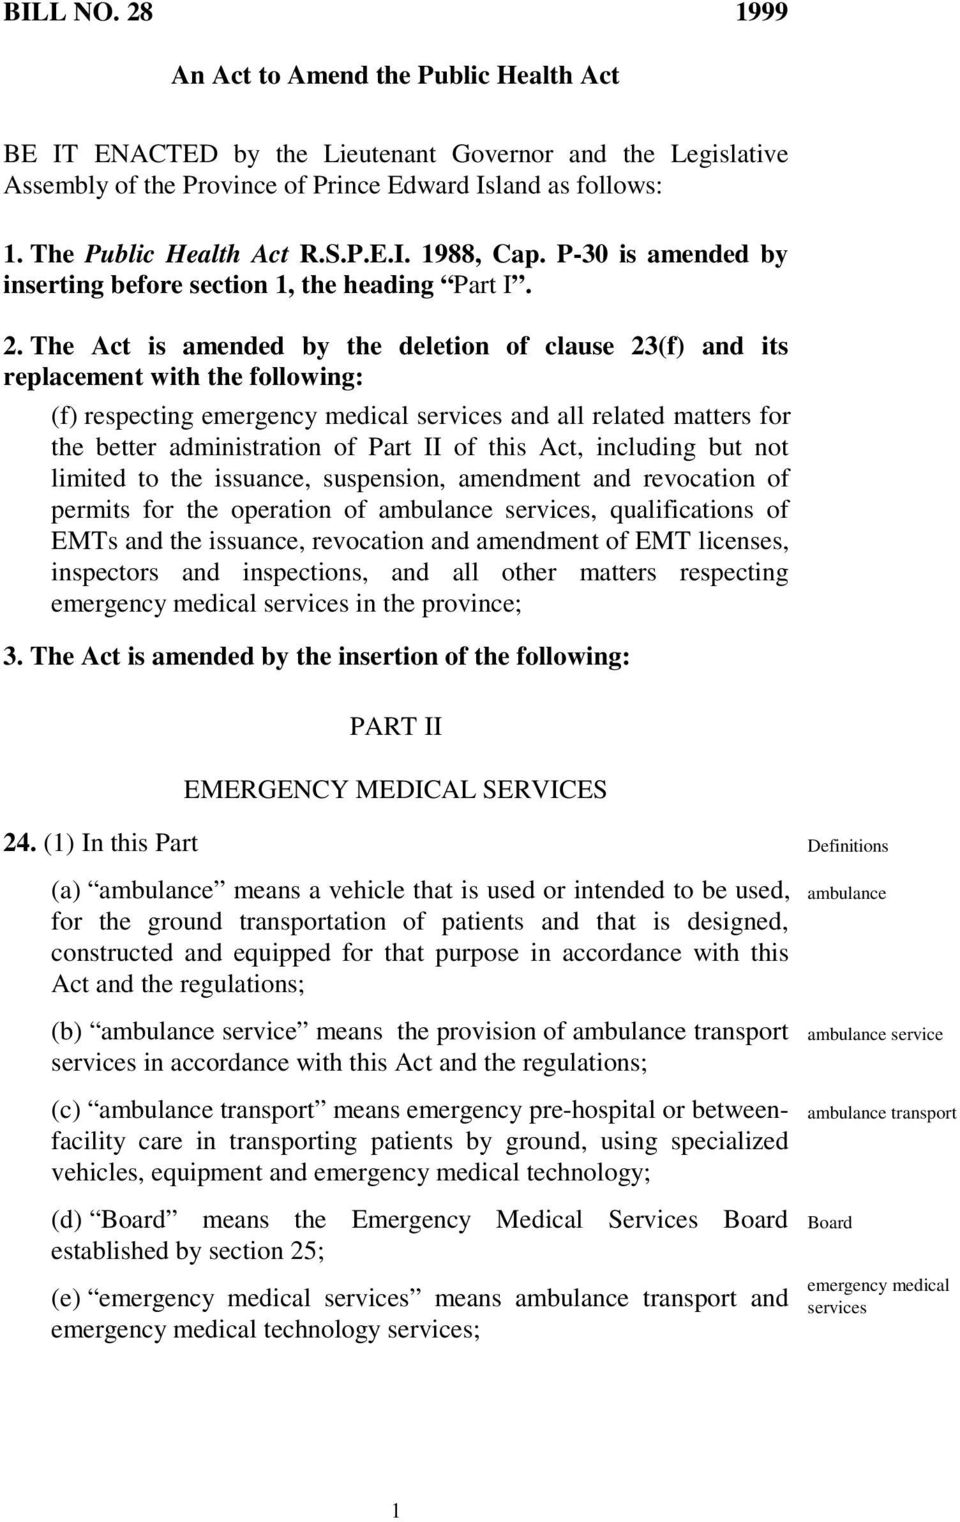 The Act is amended by the deletion of clause 23(f) and its replacement with the following: (f) respecting emergency medical services and all related matters for the better administration of Part II